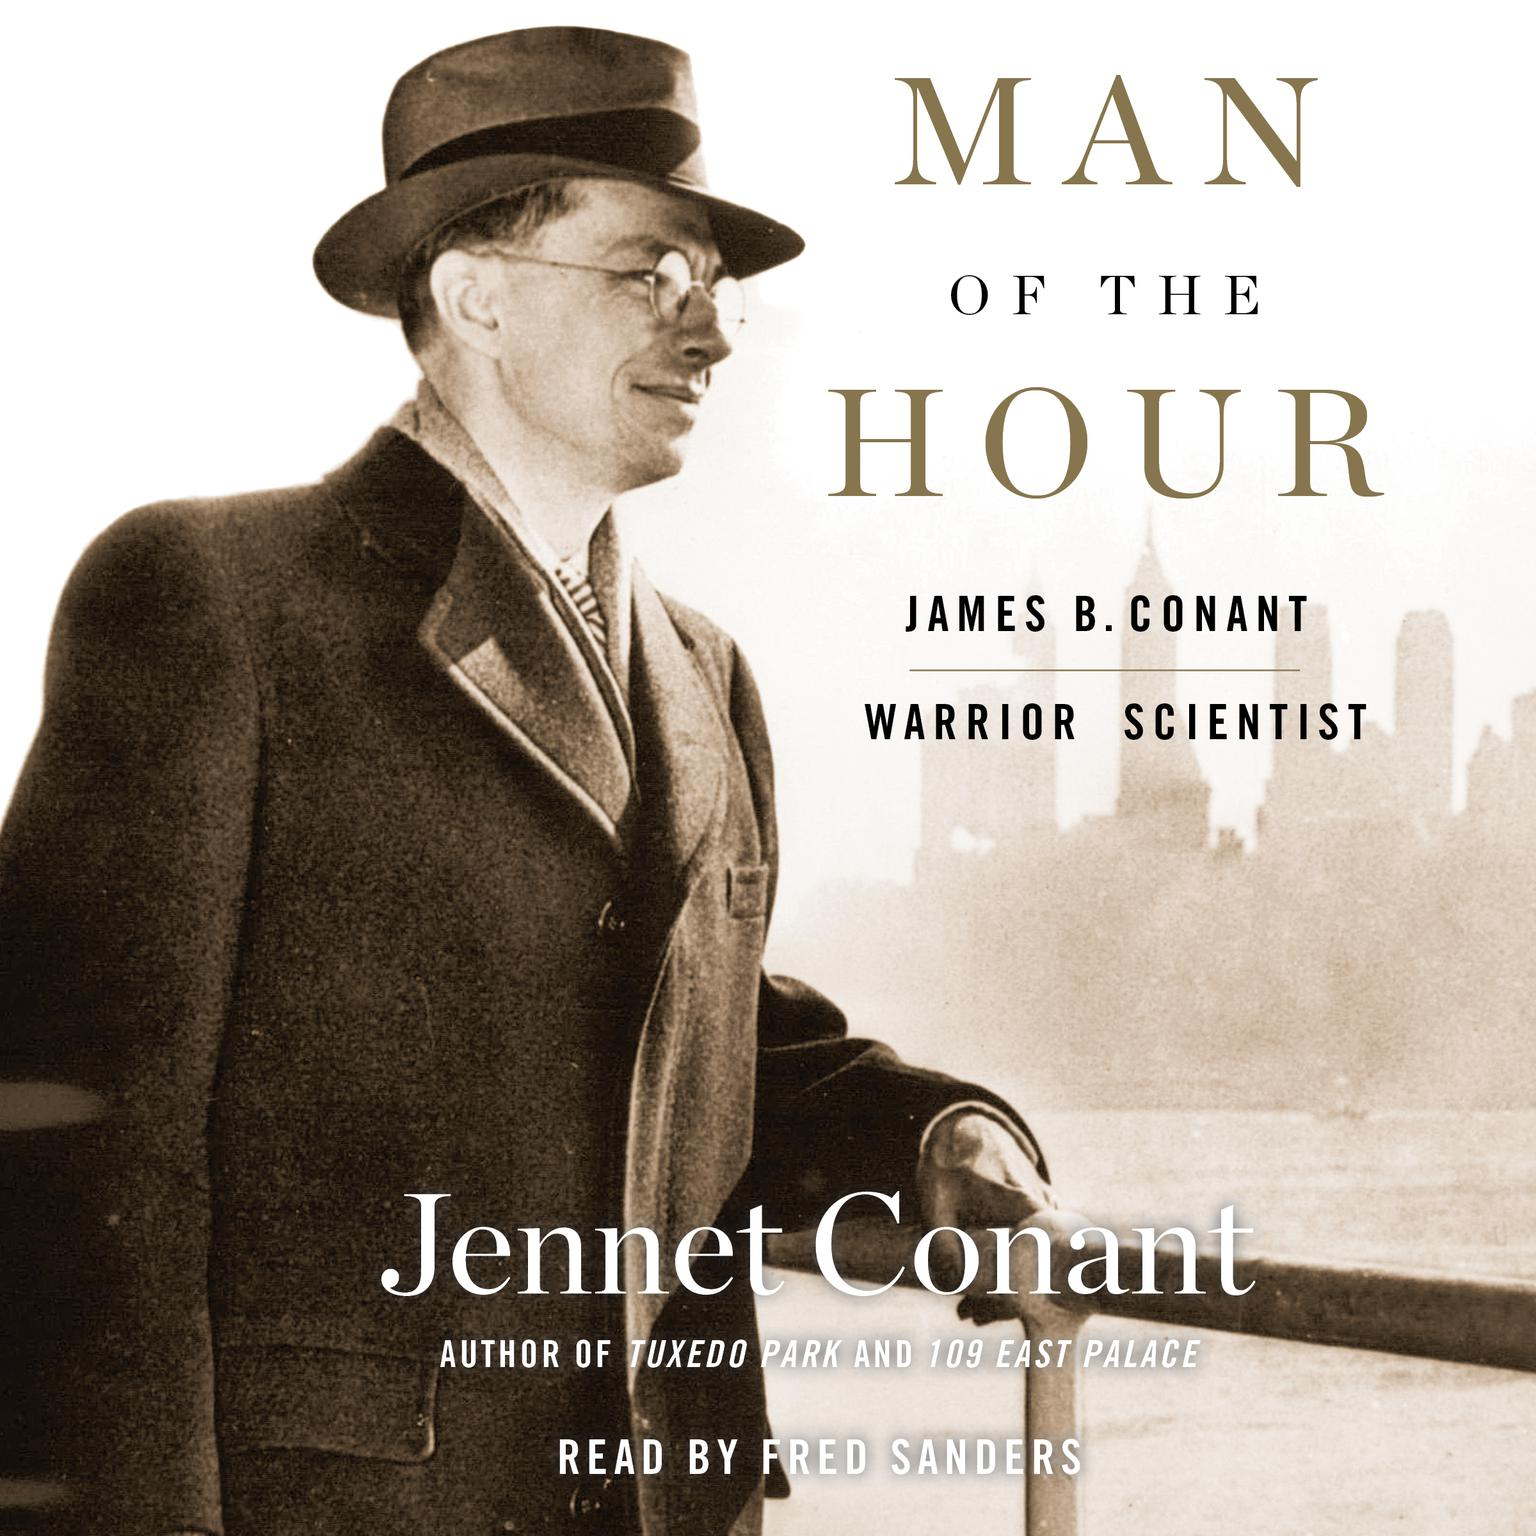 Printable Man of the Hour: James B. Conant, Warrior Scientist Audiobook Cover Art